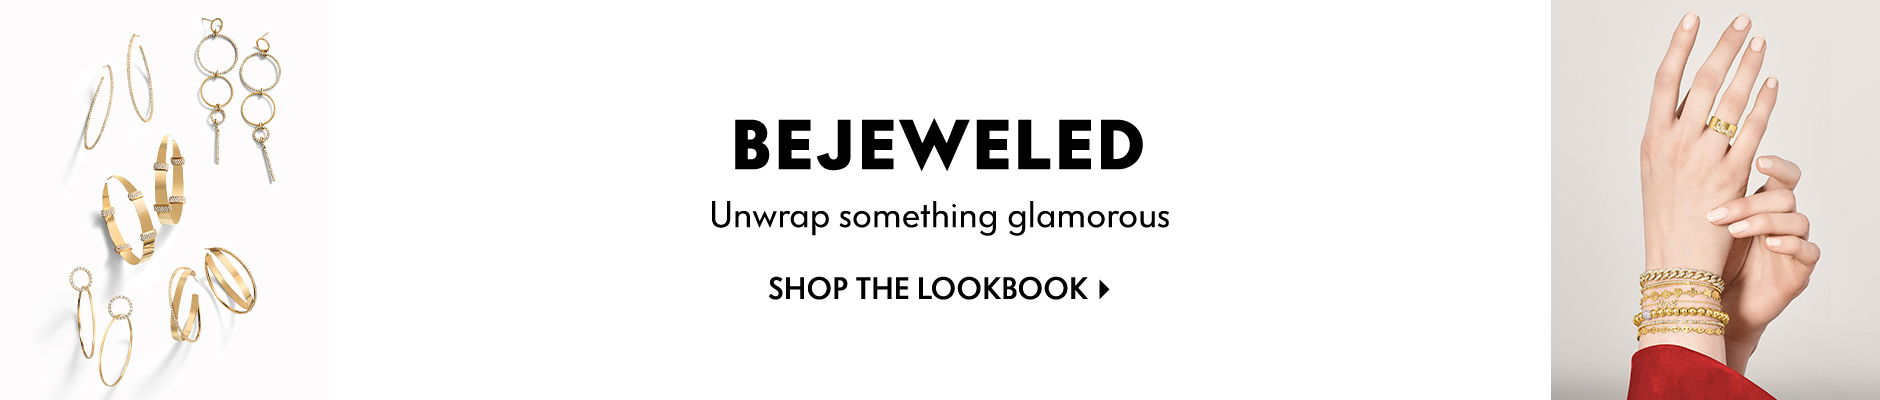 Bejeweled Lookbook